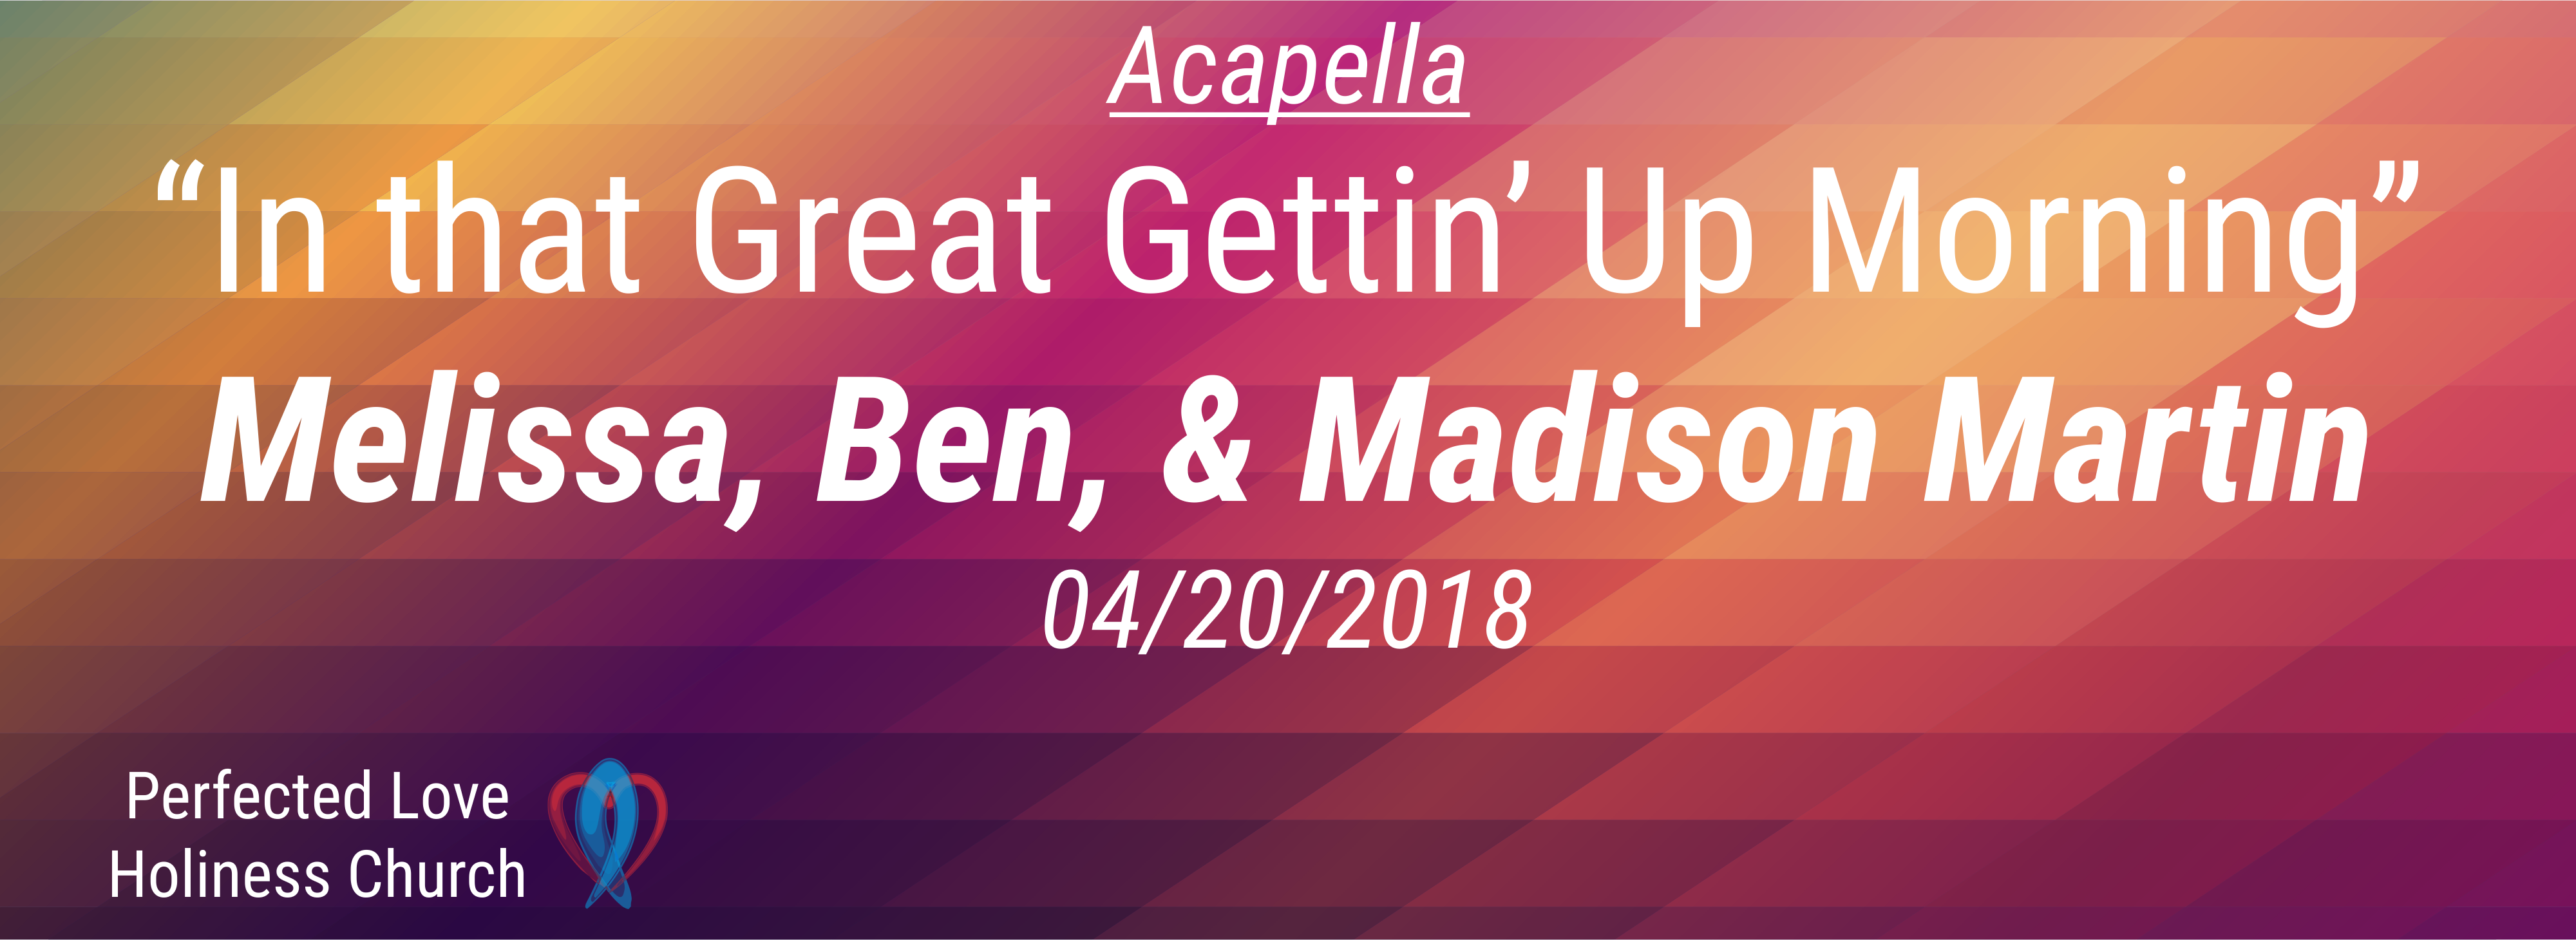 In that great gettin up morning - Song 04-20-18